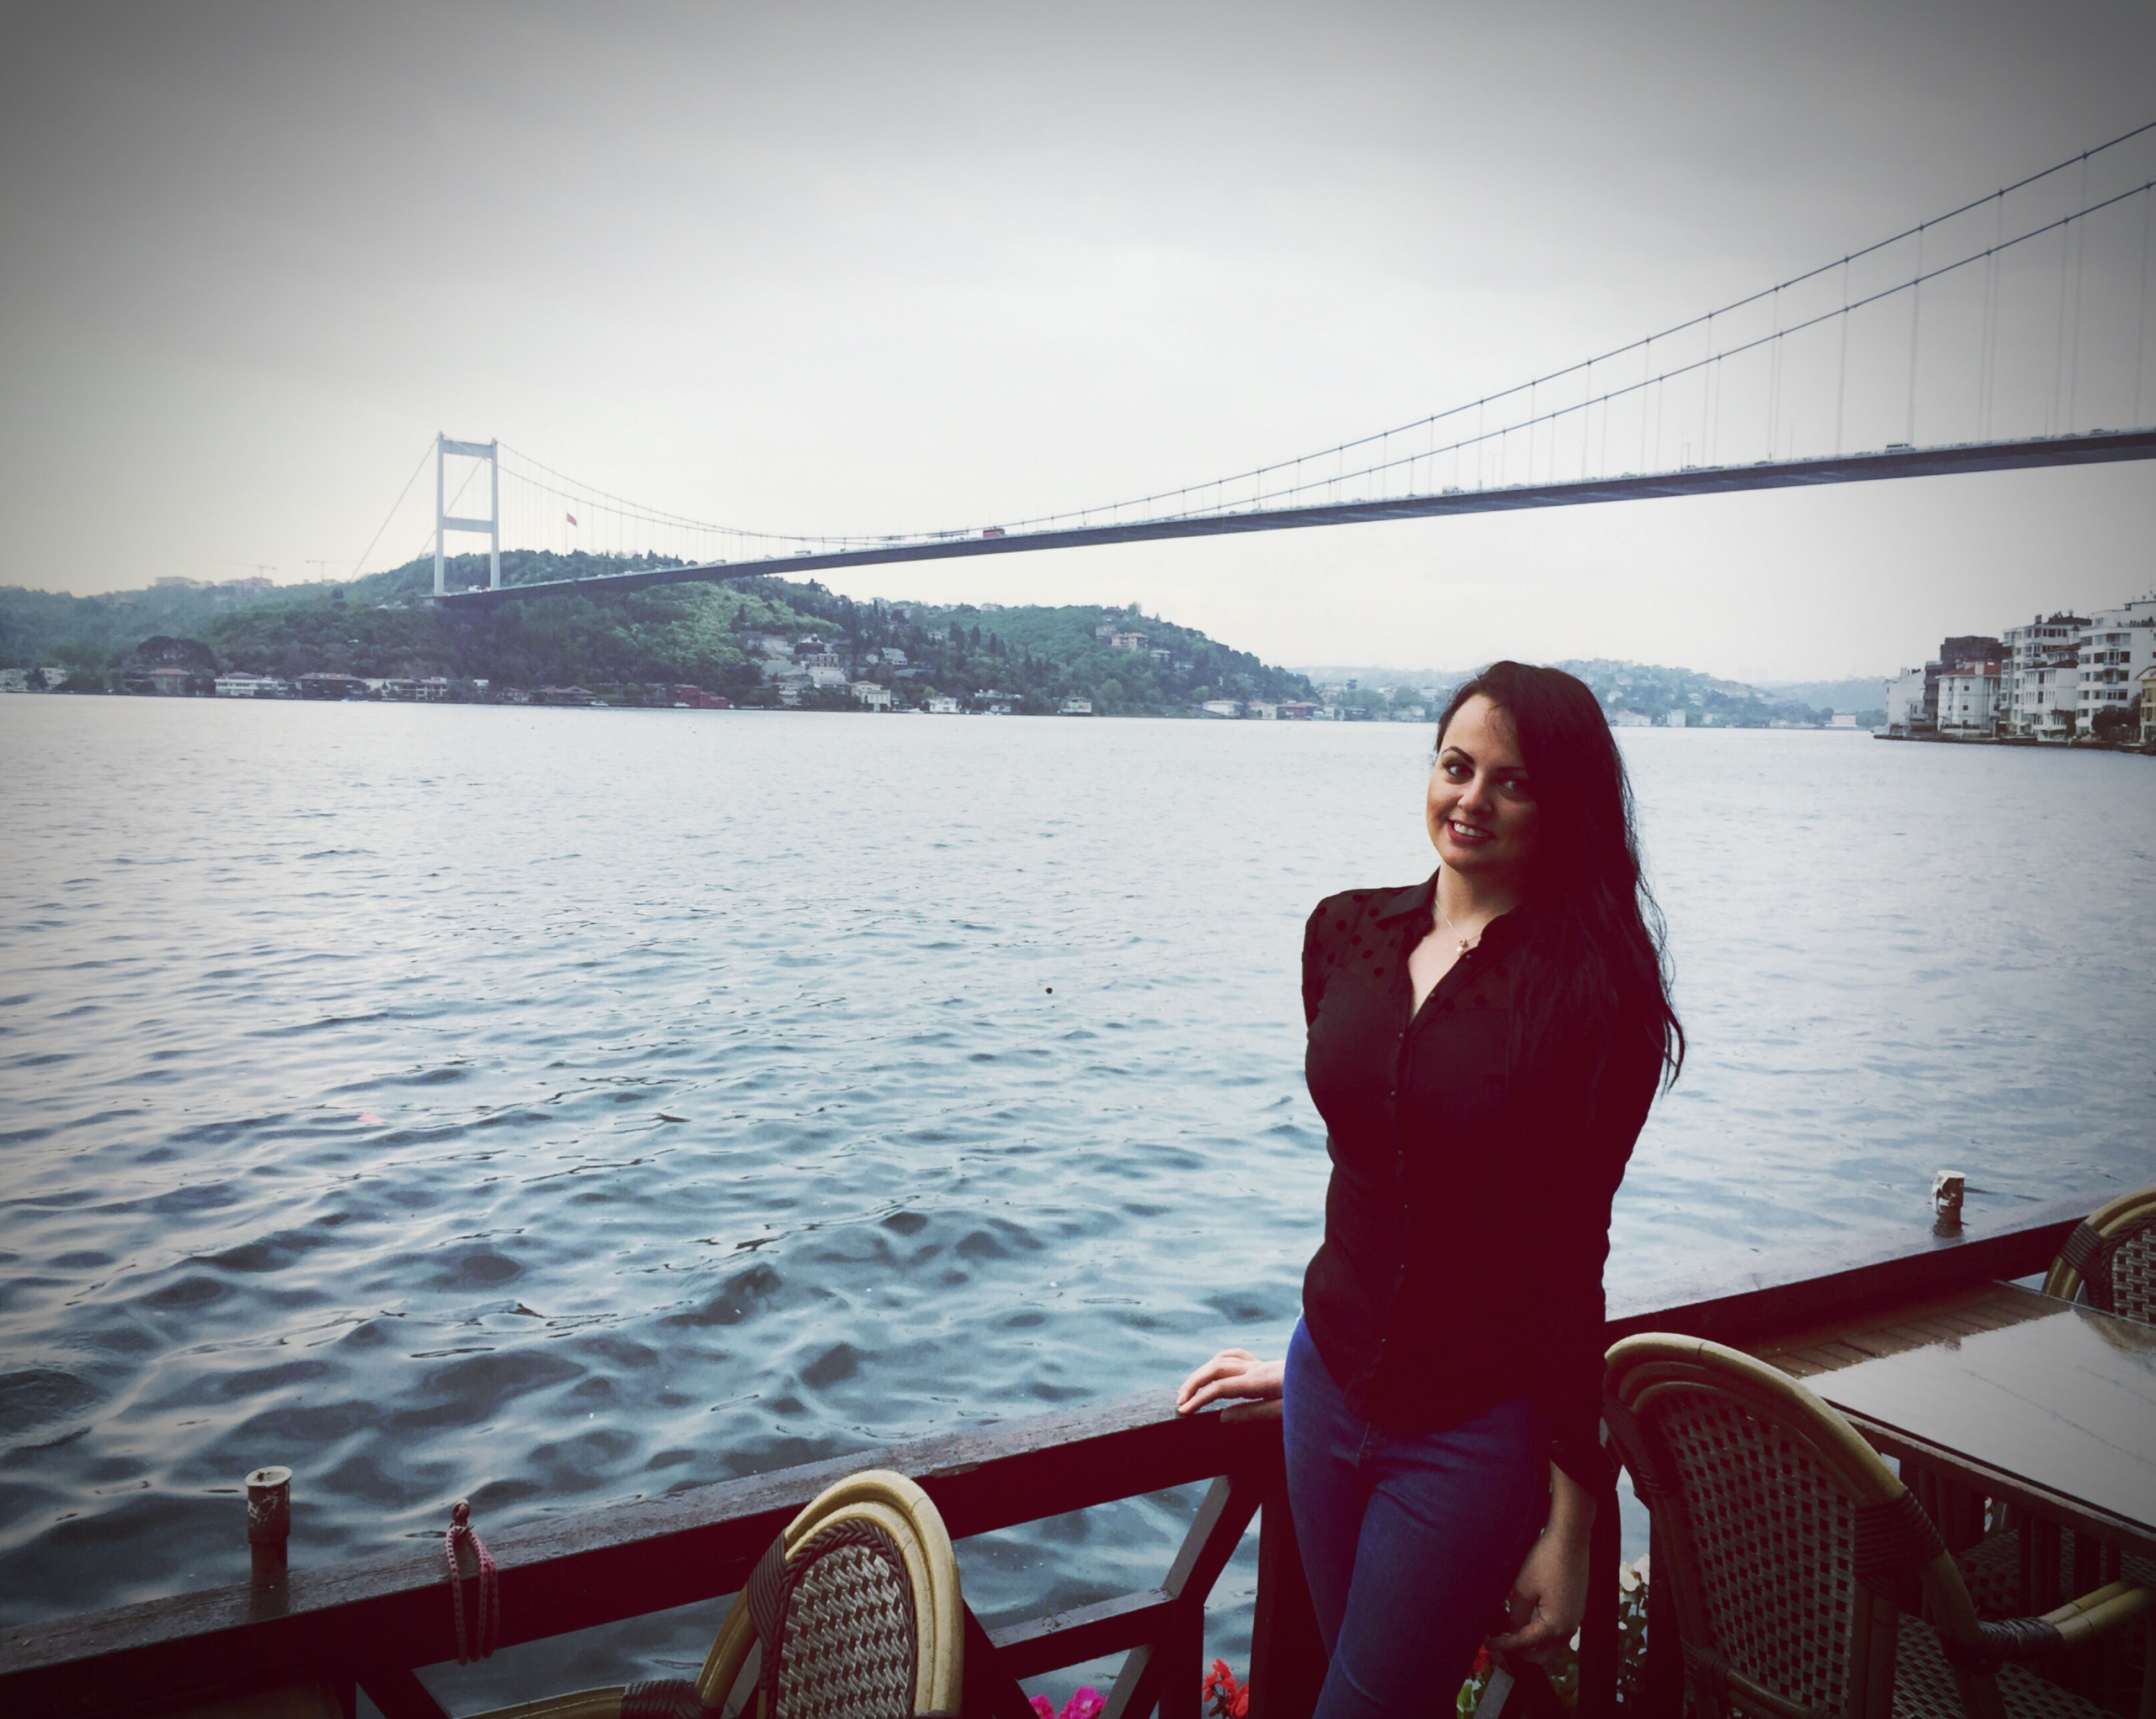 bridge - man made structure, connection, river, suspension bridge, water, real people, railing, transportation, one person, bridge, young adult, architecture, lifestyles, leisure activity, built structure, sky, outdoors, young women, nautical vessel, day, smiling, beautiful woman, city, nature